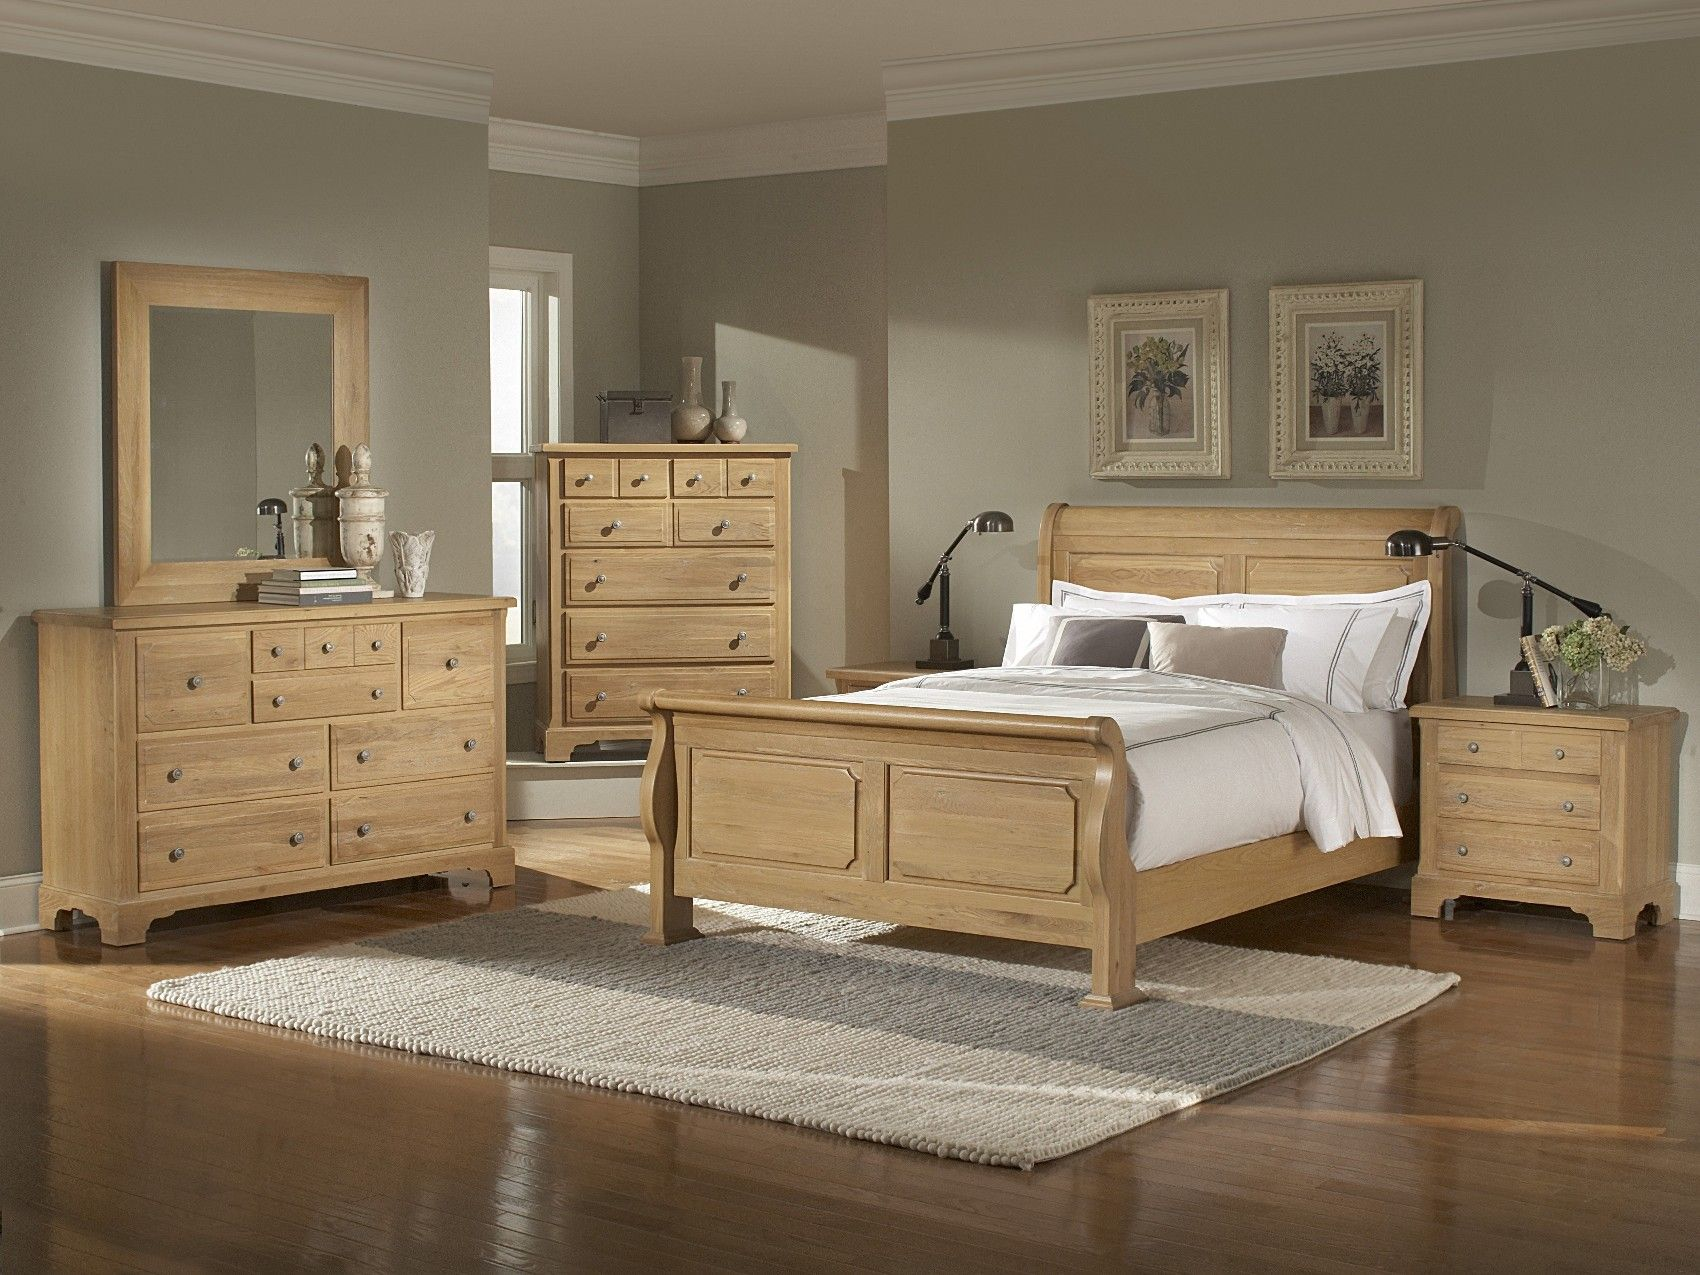 oak bedroom furniture sets washed oak queen sleigh 19048 | 84a9bafb0962ad79c192c6d1010a8108